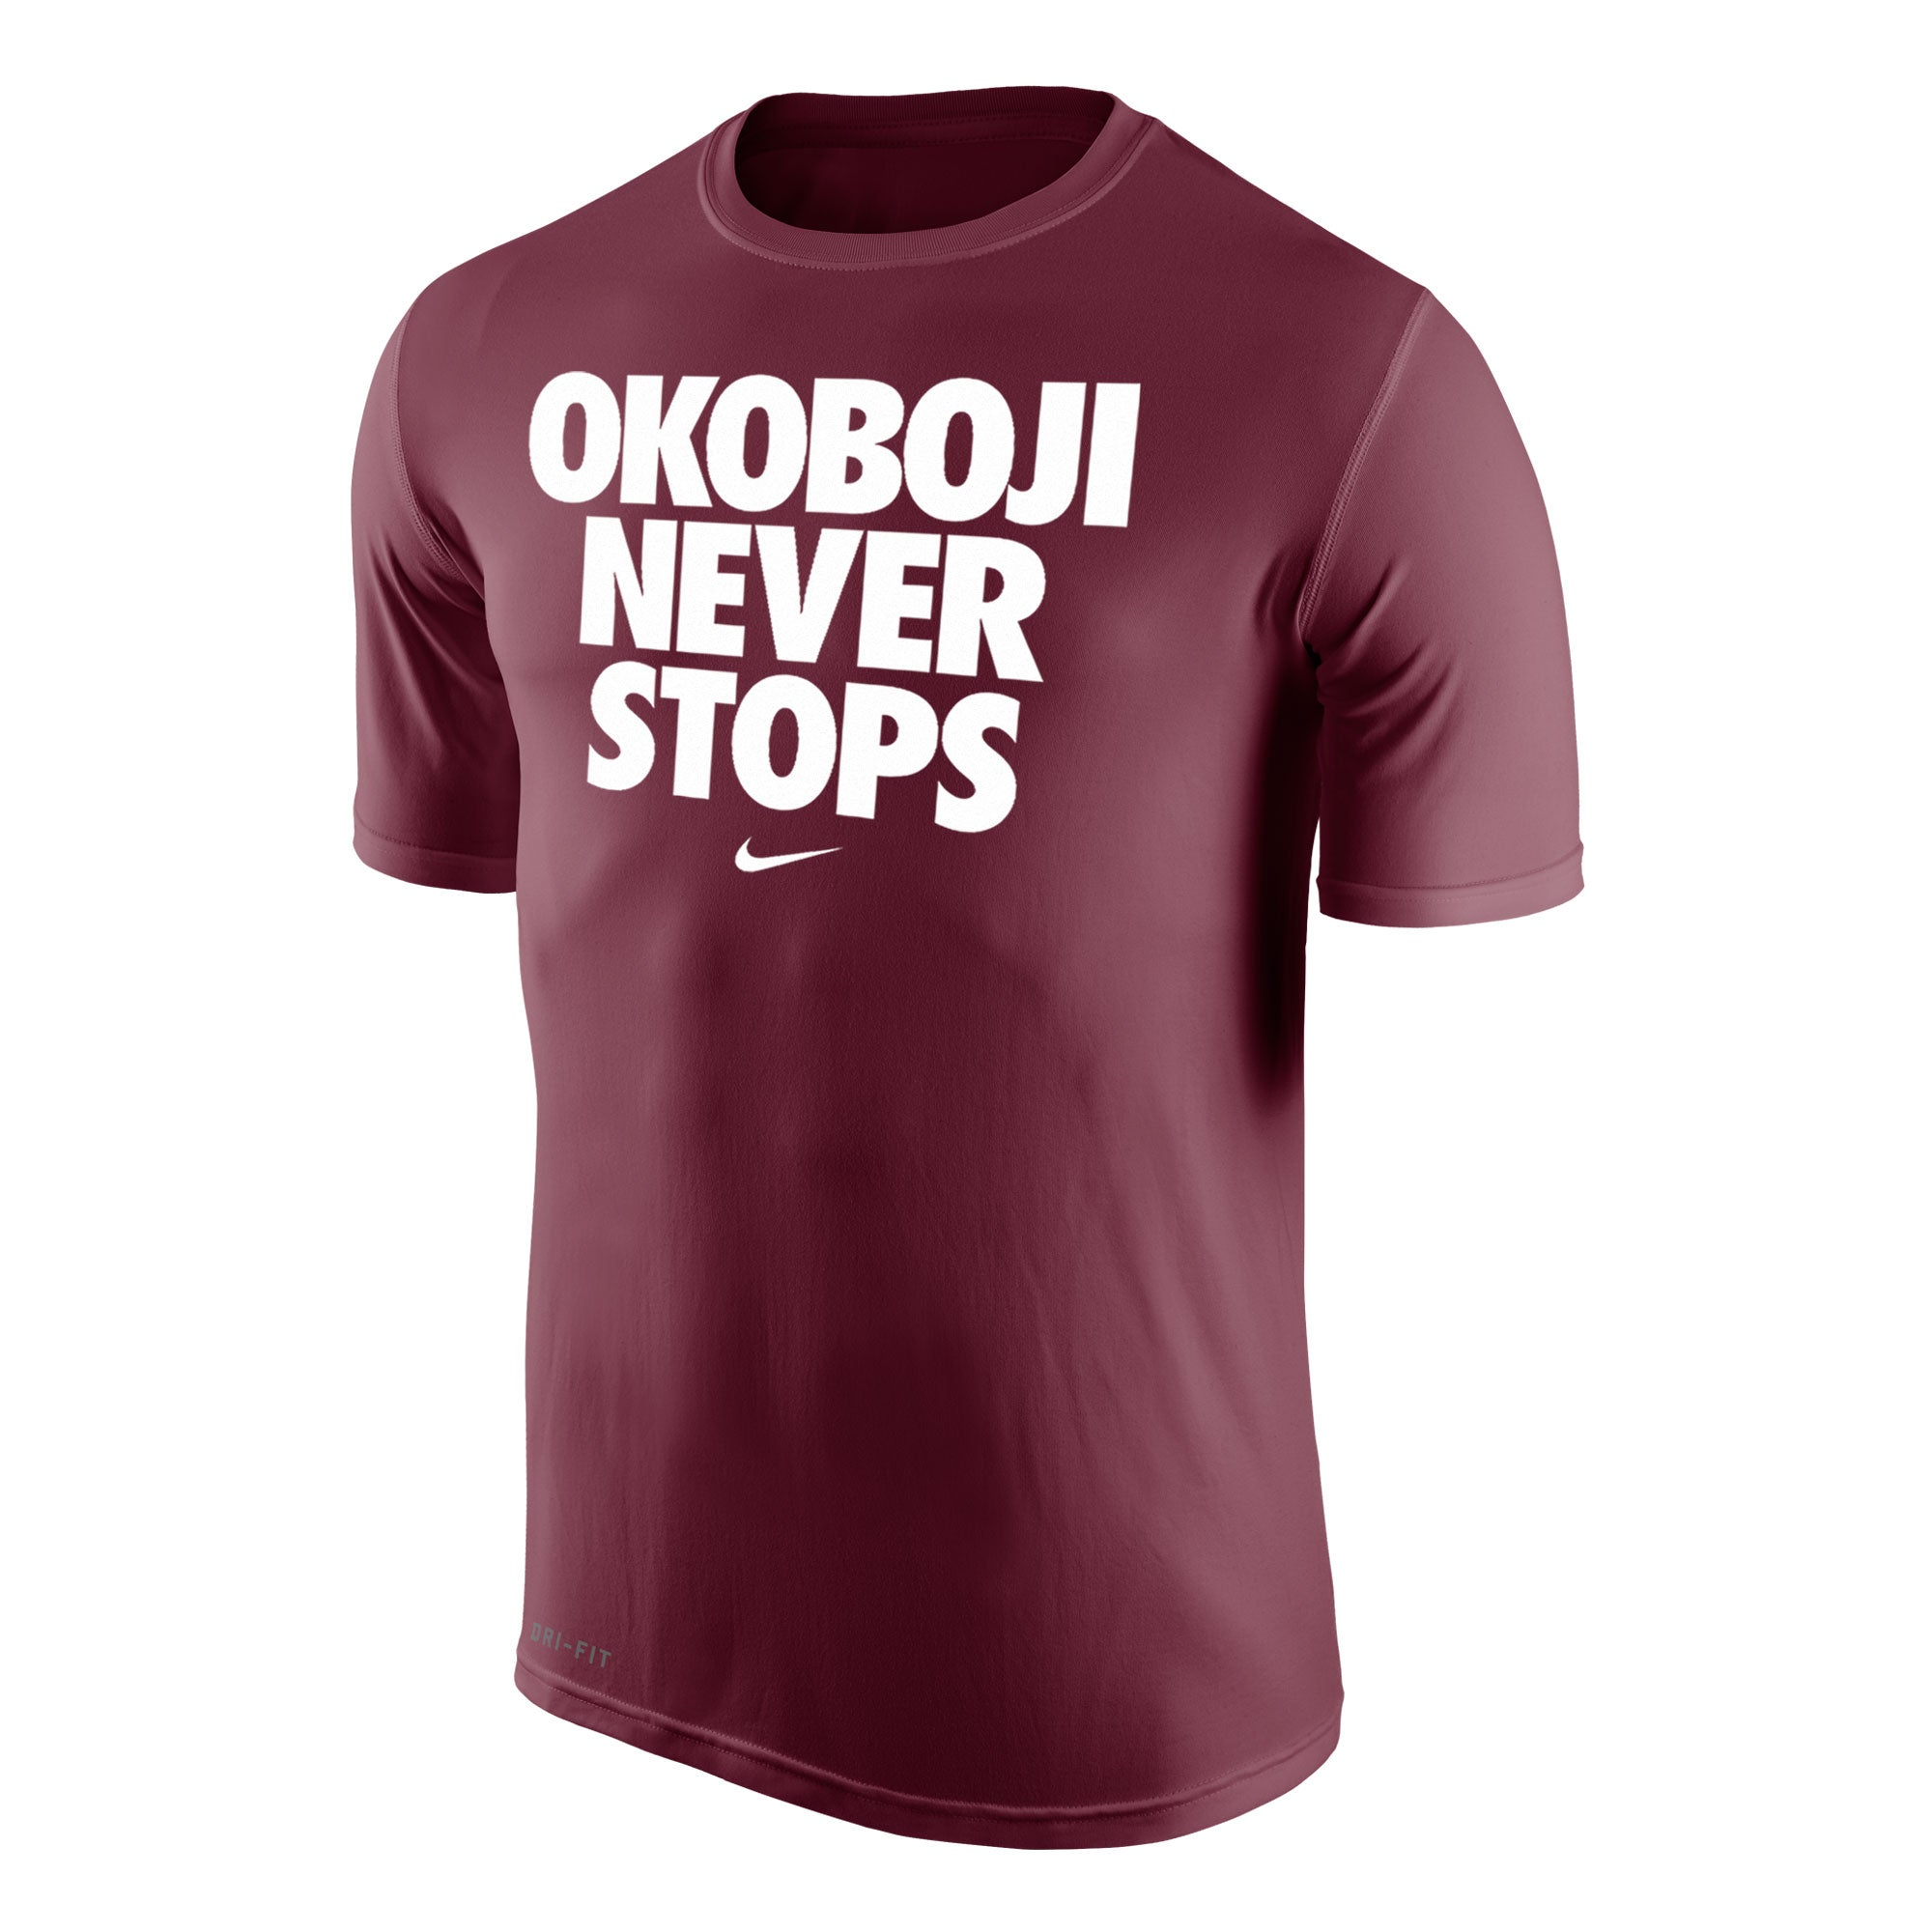 Okoboji Never Stops Dri-Fit Legend 2.0 Short Sleeve Tee - Maroon